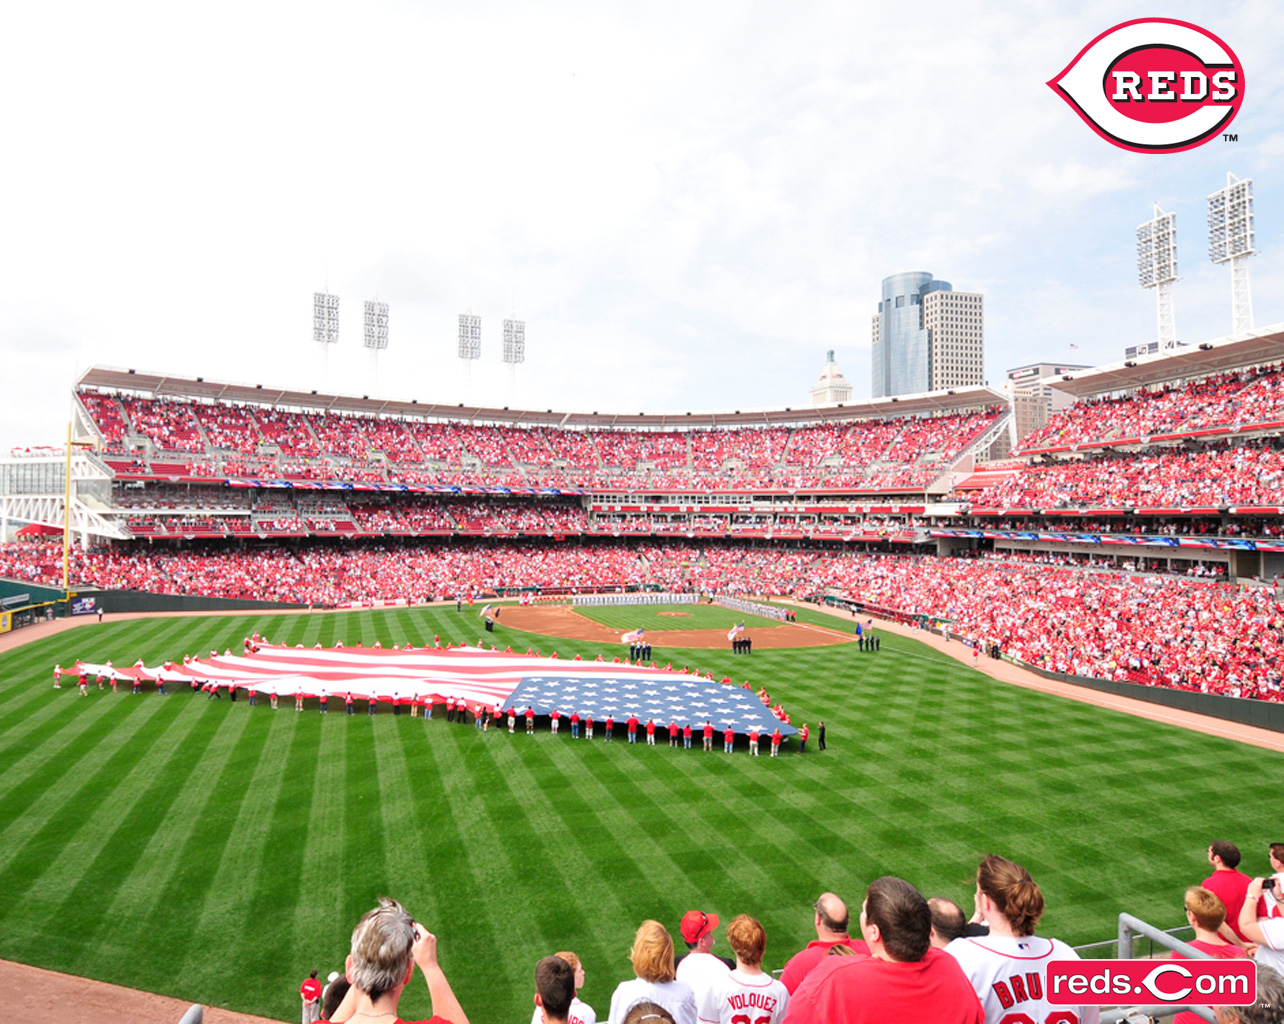 Desktop Wallpapers Cincinnati Reds 1284x1024